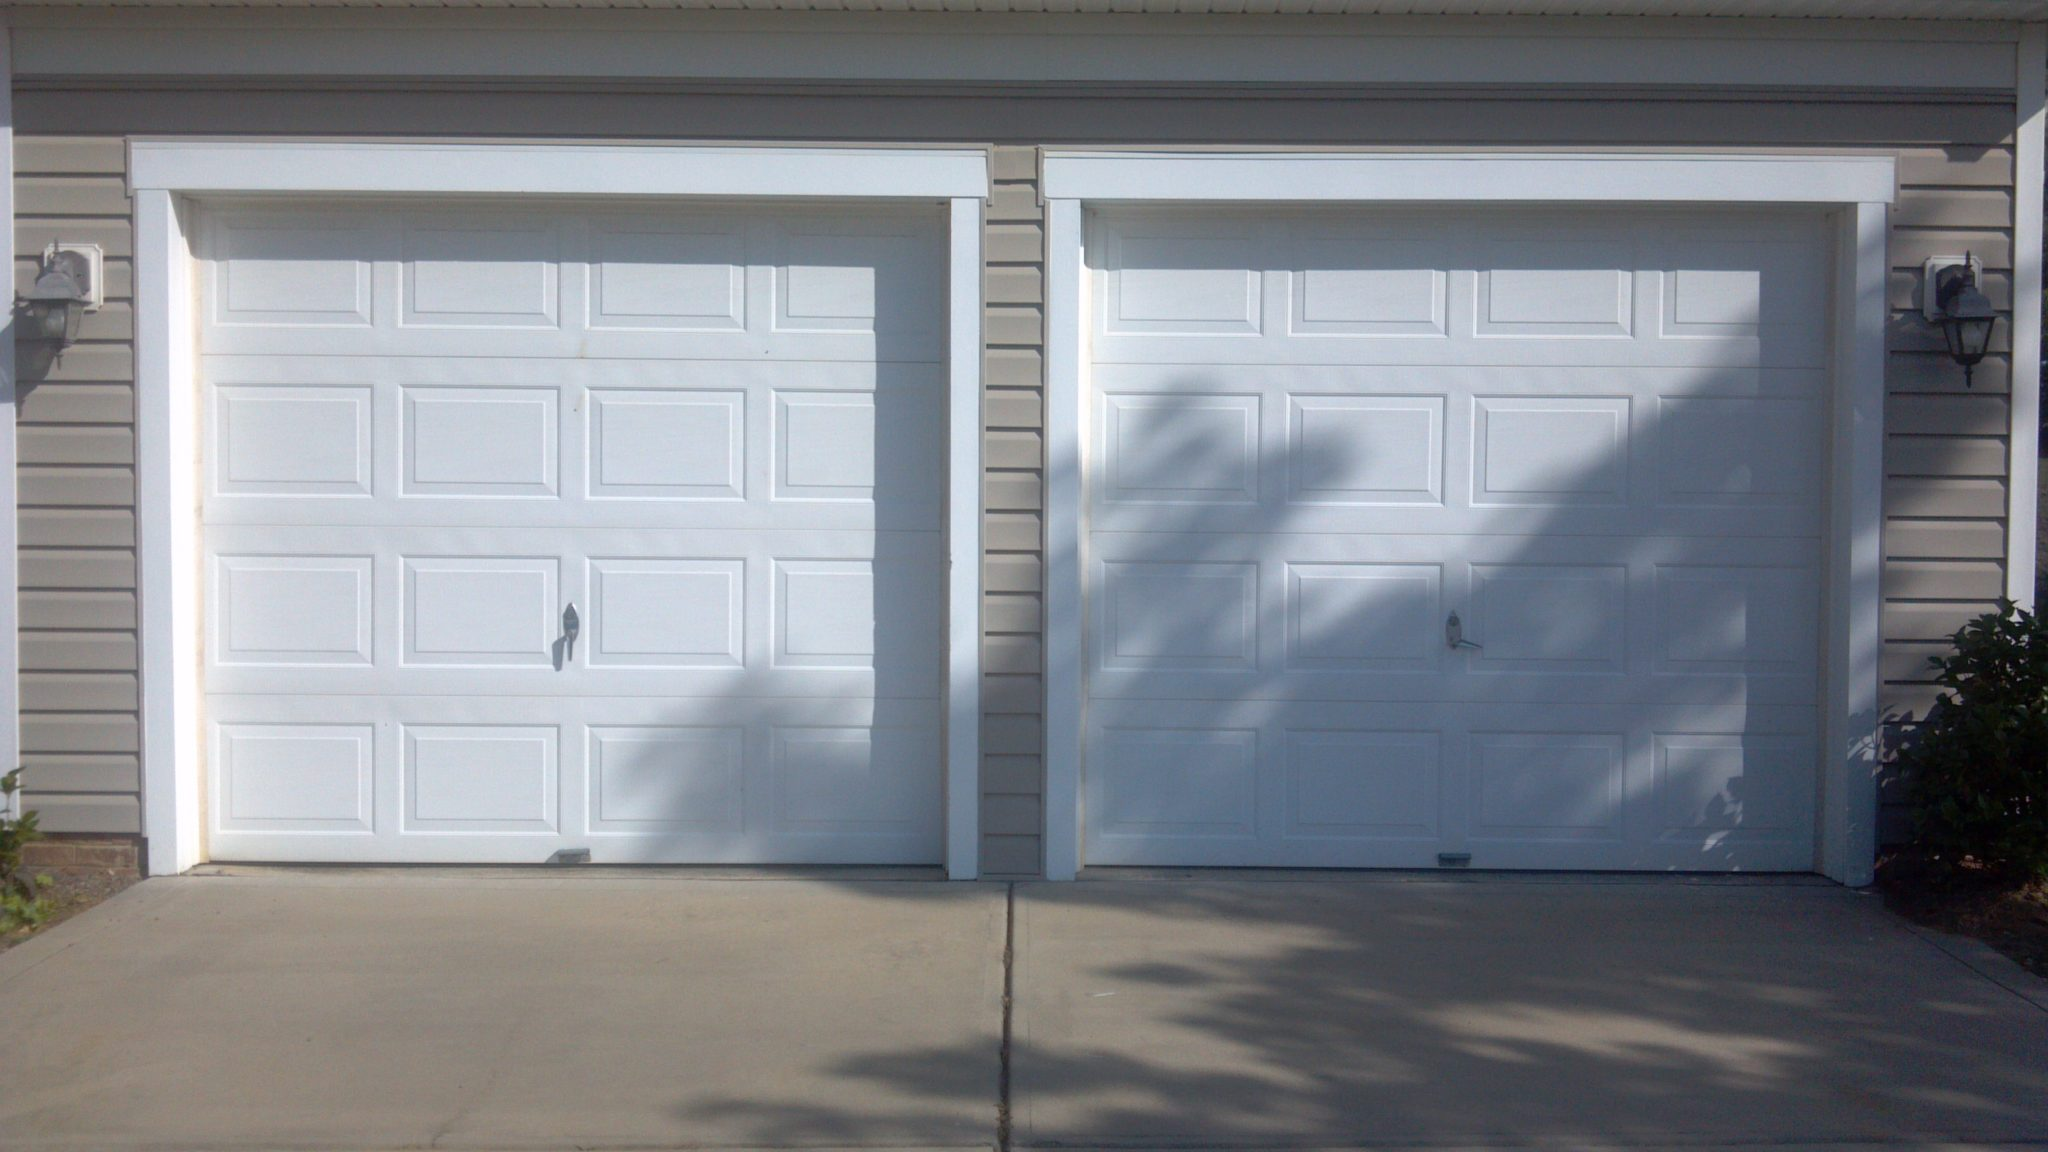 Two single garage doors before a plus garage doors 2 car garage doors